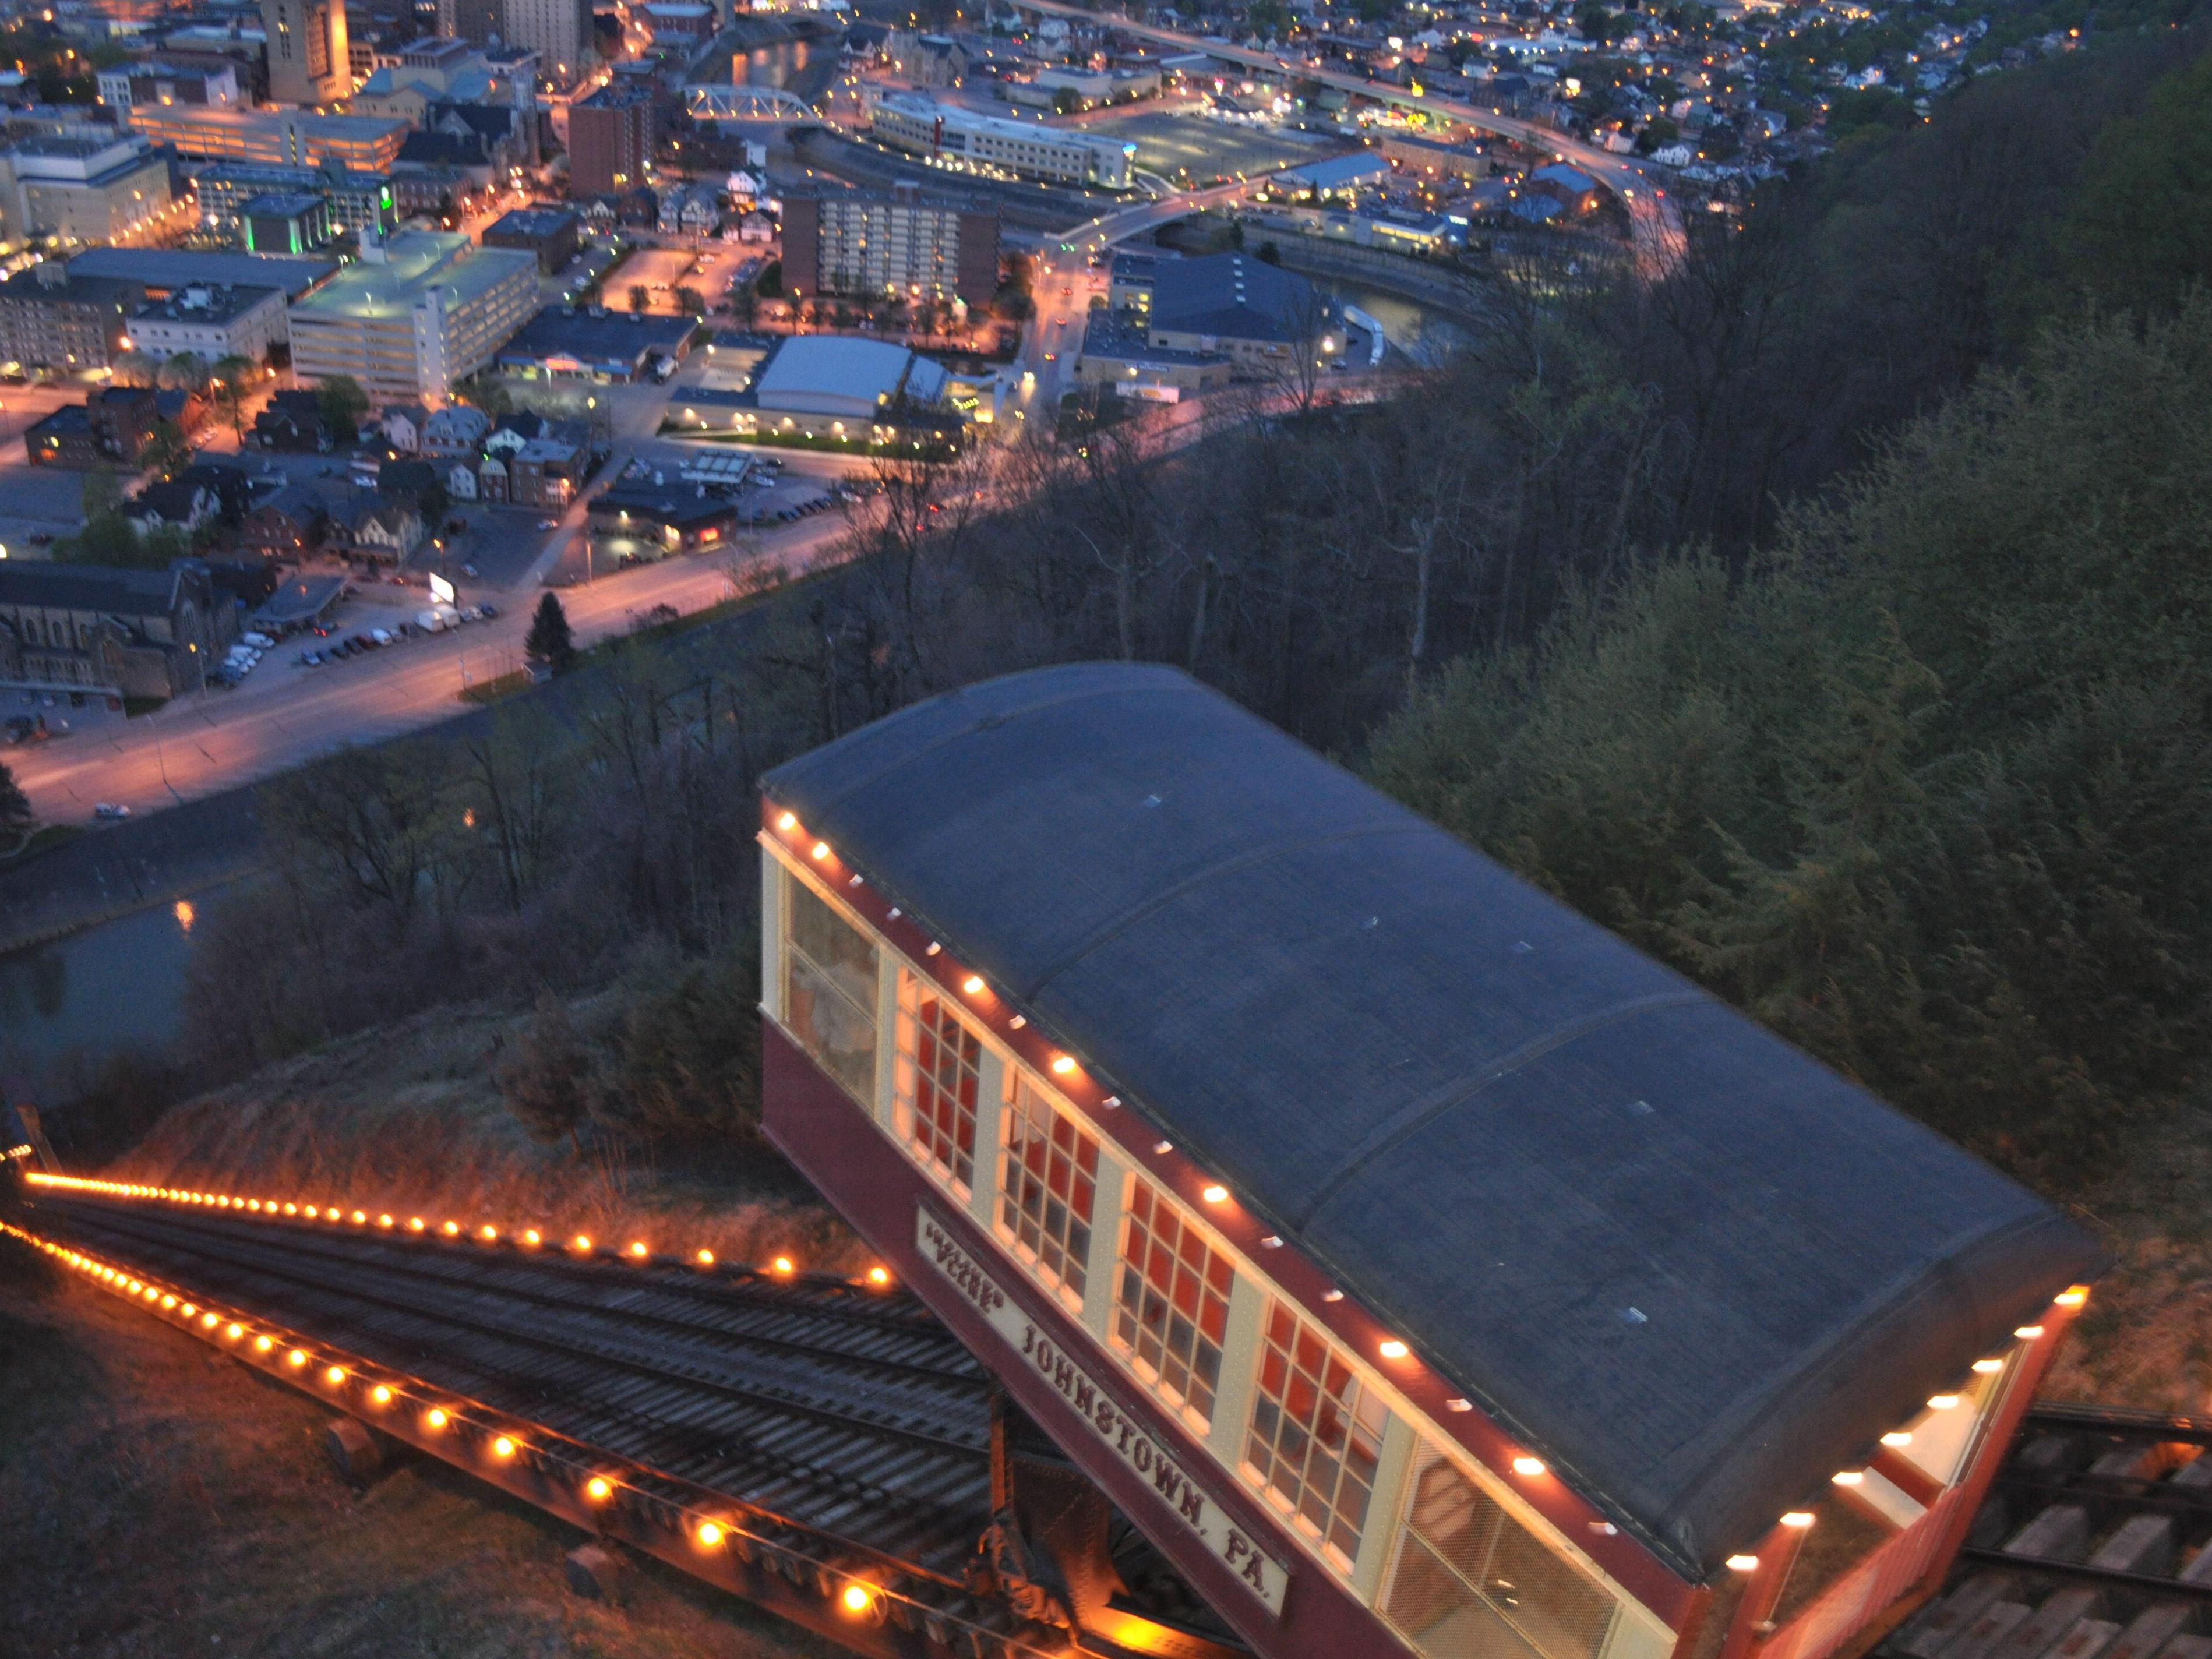 View from the Inclined Plane